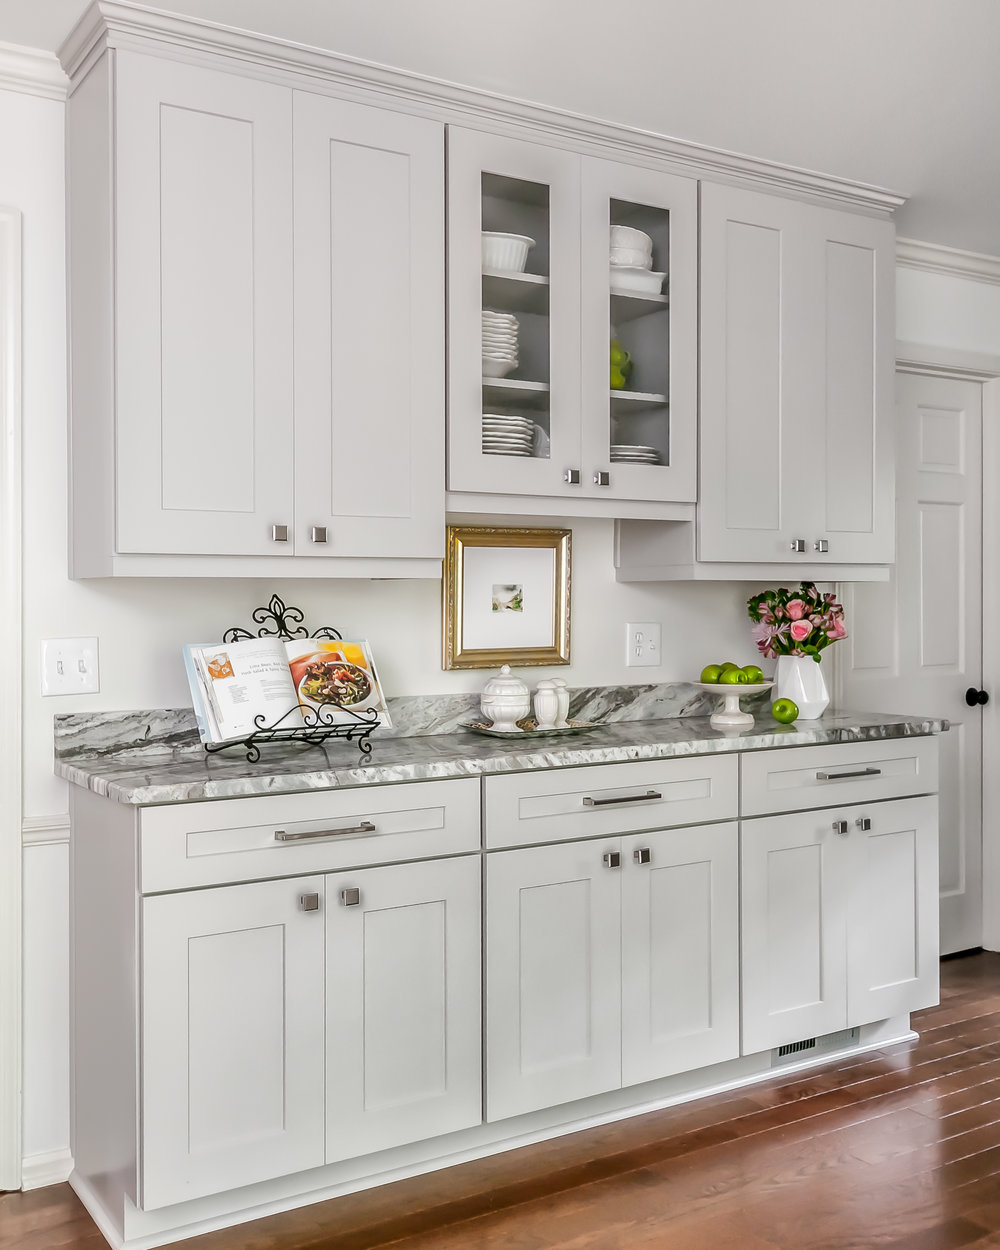 This beautiful butler pantry replaced the desk and pantry closets, and is perfect for storage, display, and for serving guests when entertaining.